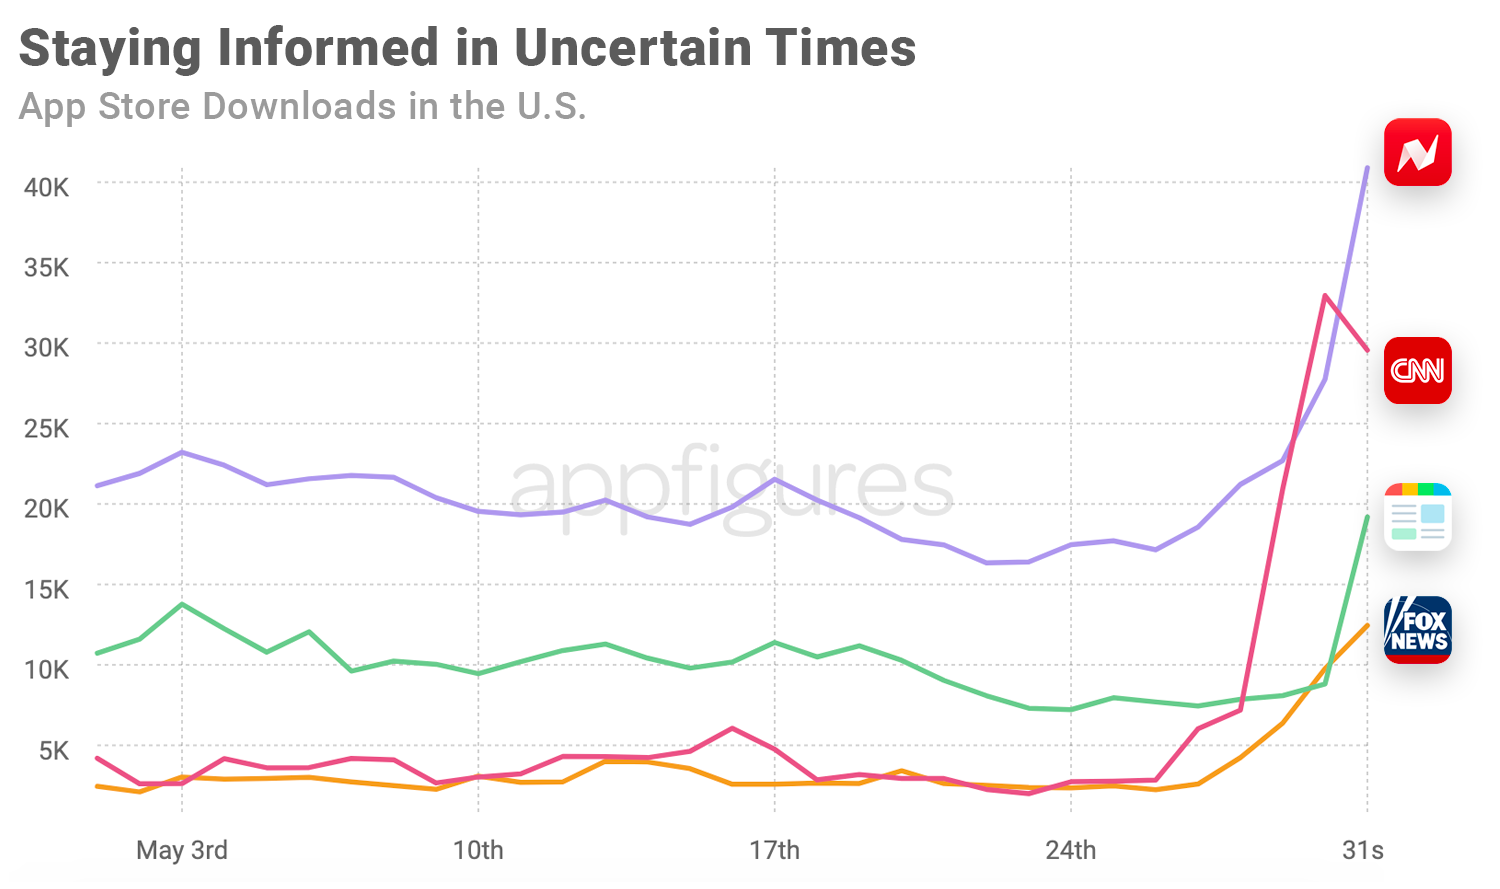 Downloads of news apps have soared during riots in the U.S App Store